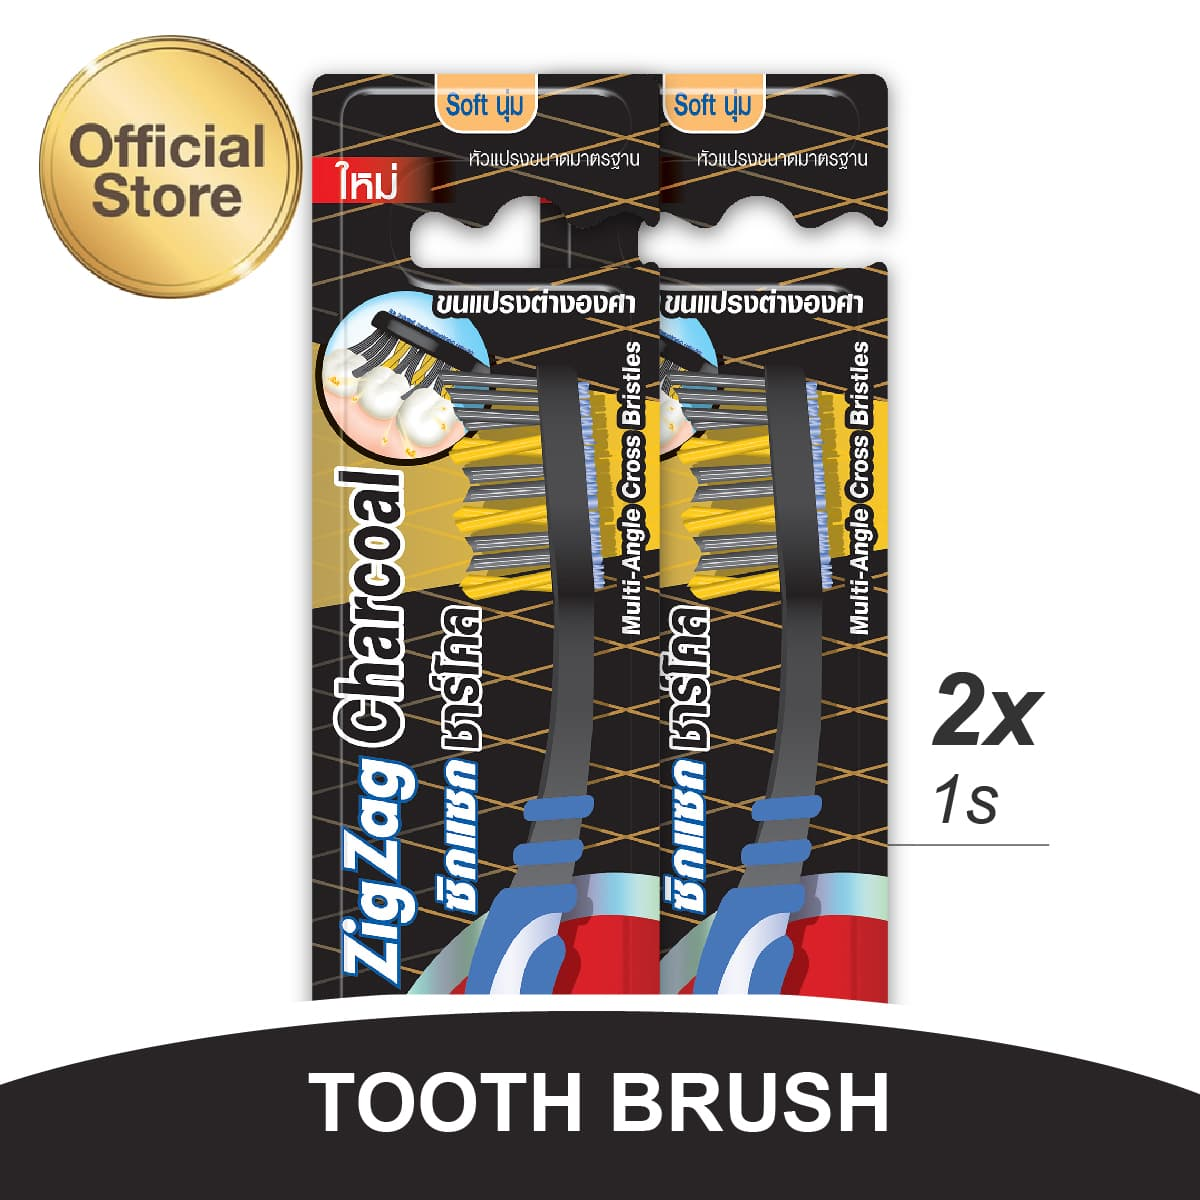 Body Care Blanjacom Gillette Blue Simpe 3 4s Paket Isi 2 Colgate Toothbrush Zig Zag Charcoal 2pcs